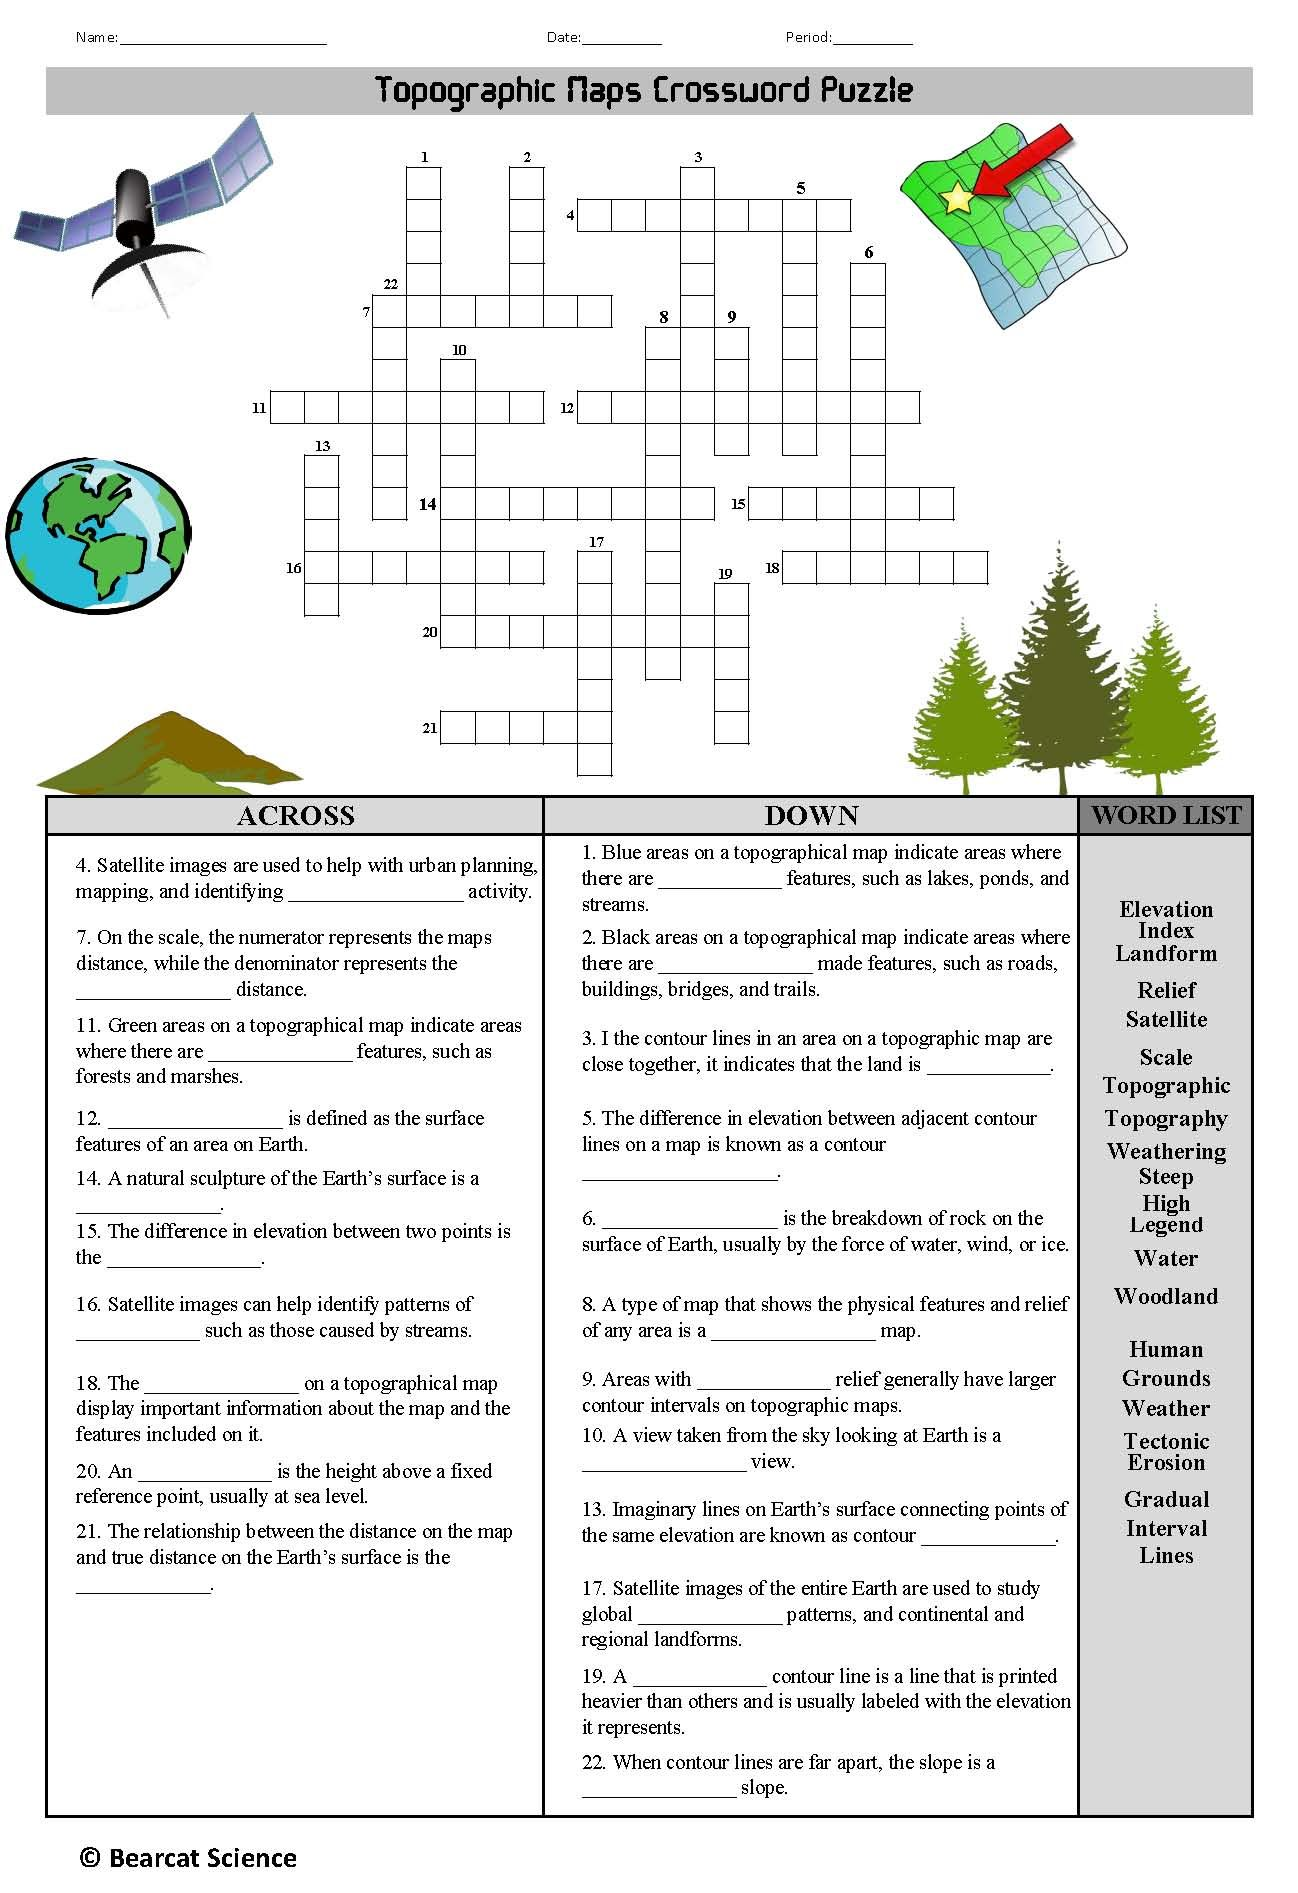 Topographic Maps Crossword